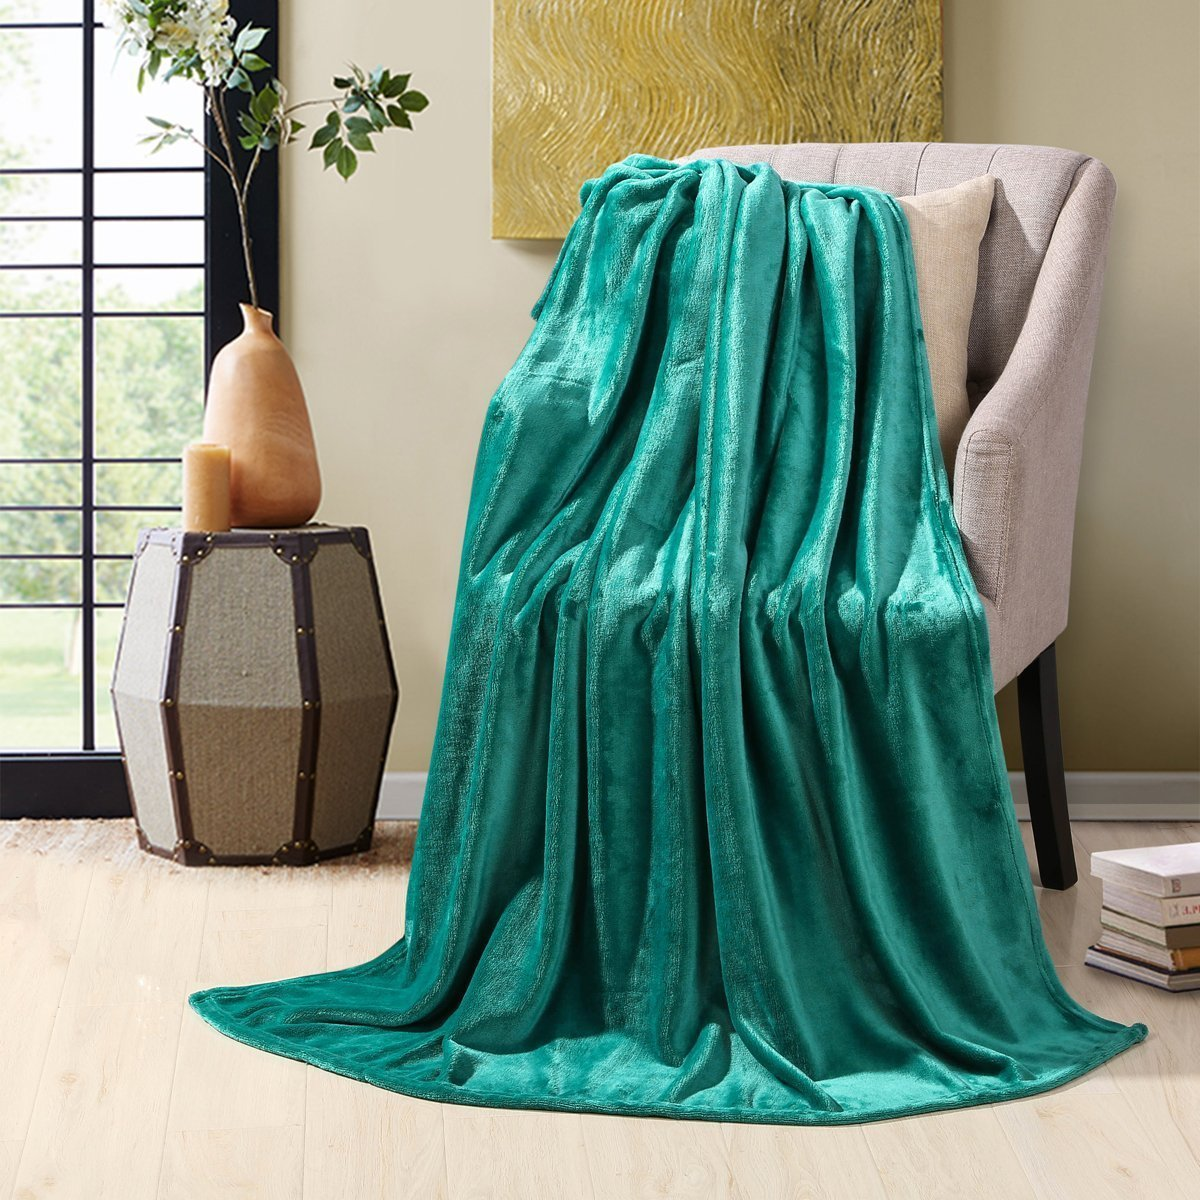 teal-throw-blanket-03